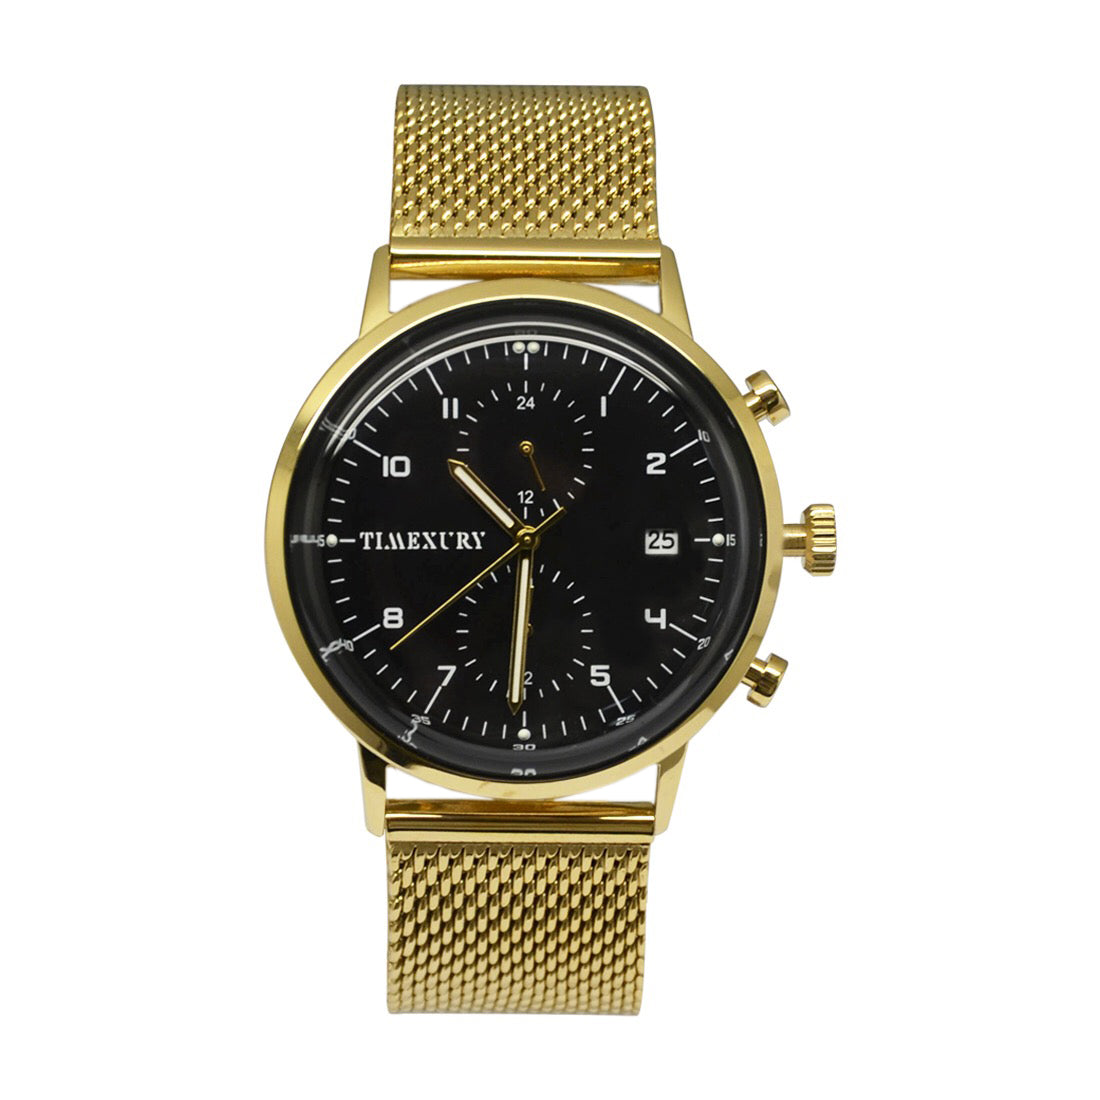 Black & Gold Chronos - TimexuryWatches